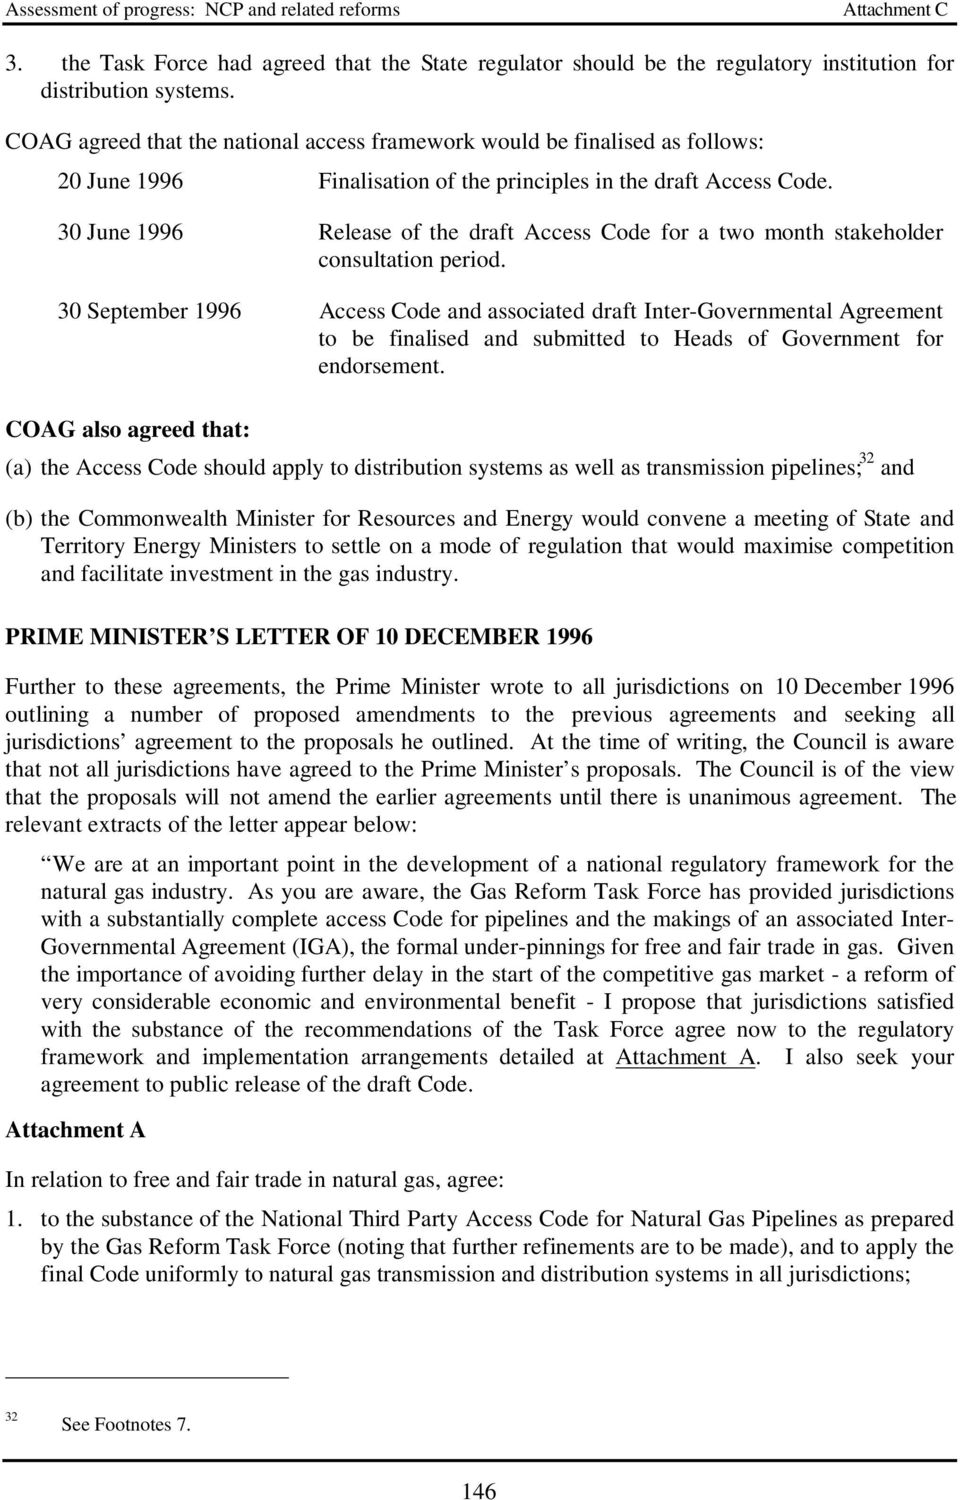 30 June 1996 Release of the draft Access Code for a two month stakeholder consultation period.